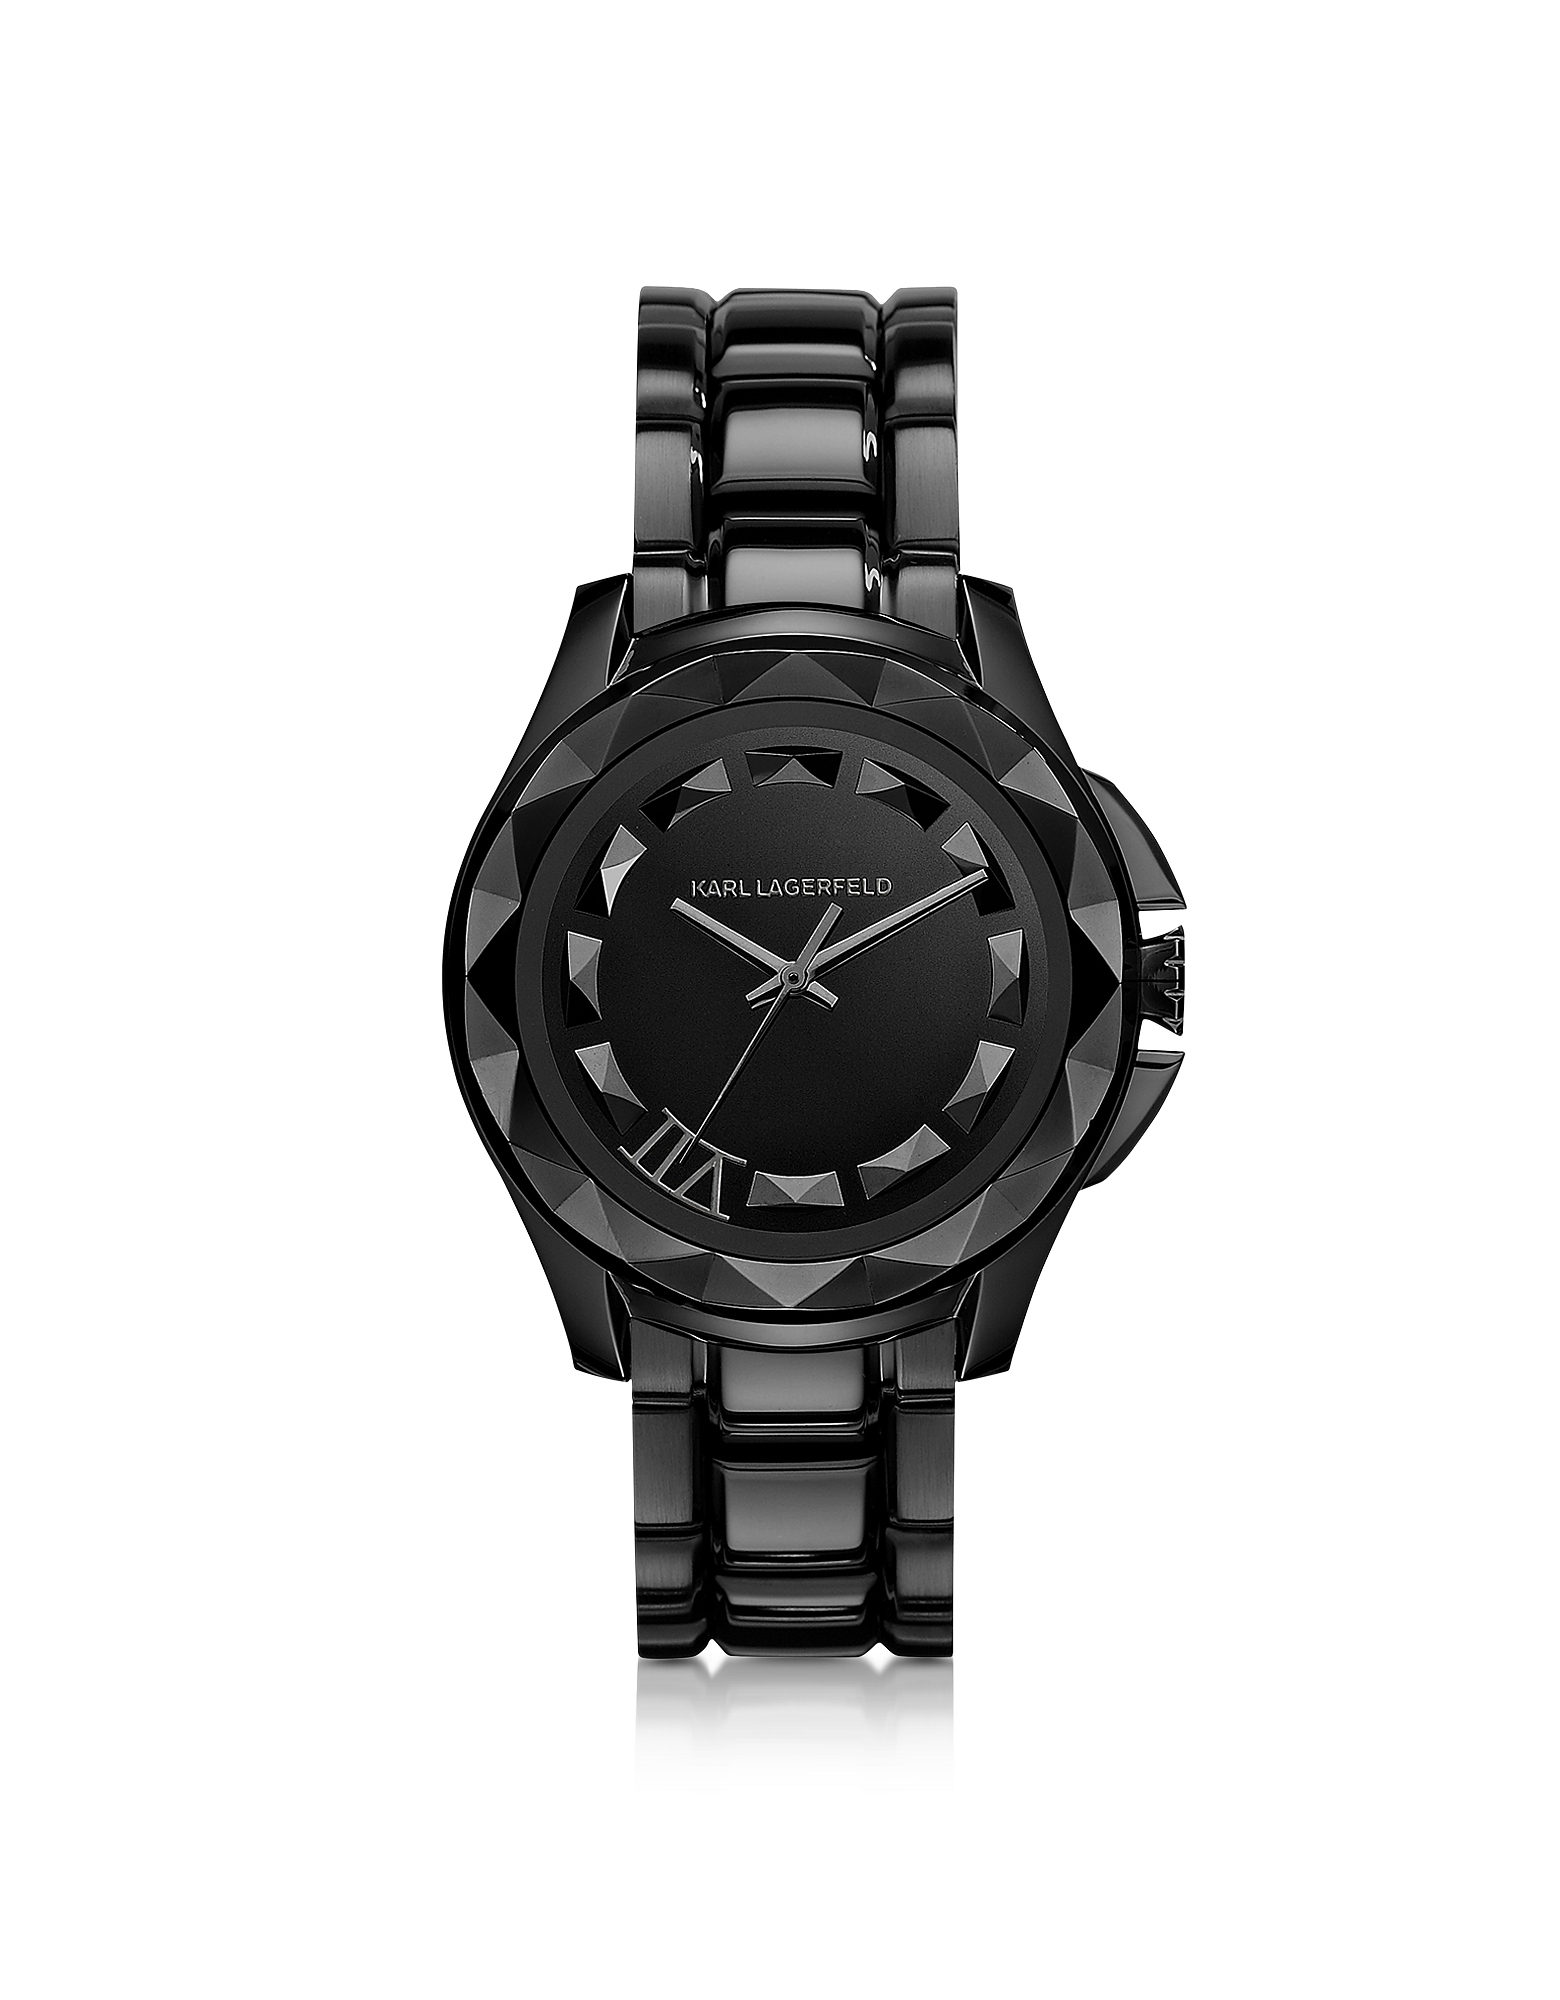 Karl Lagerfeld Women's Watches, Karl 7 43.5 mm Black IP Stainless Steel Unisex Watch